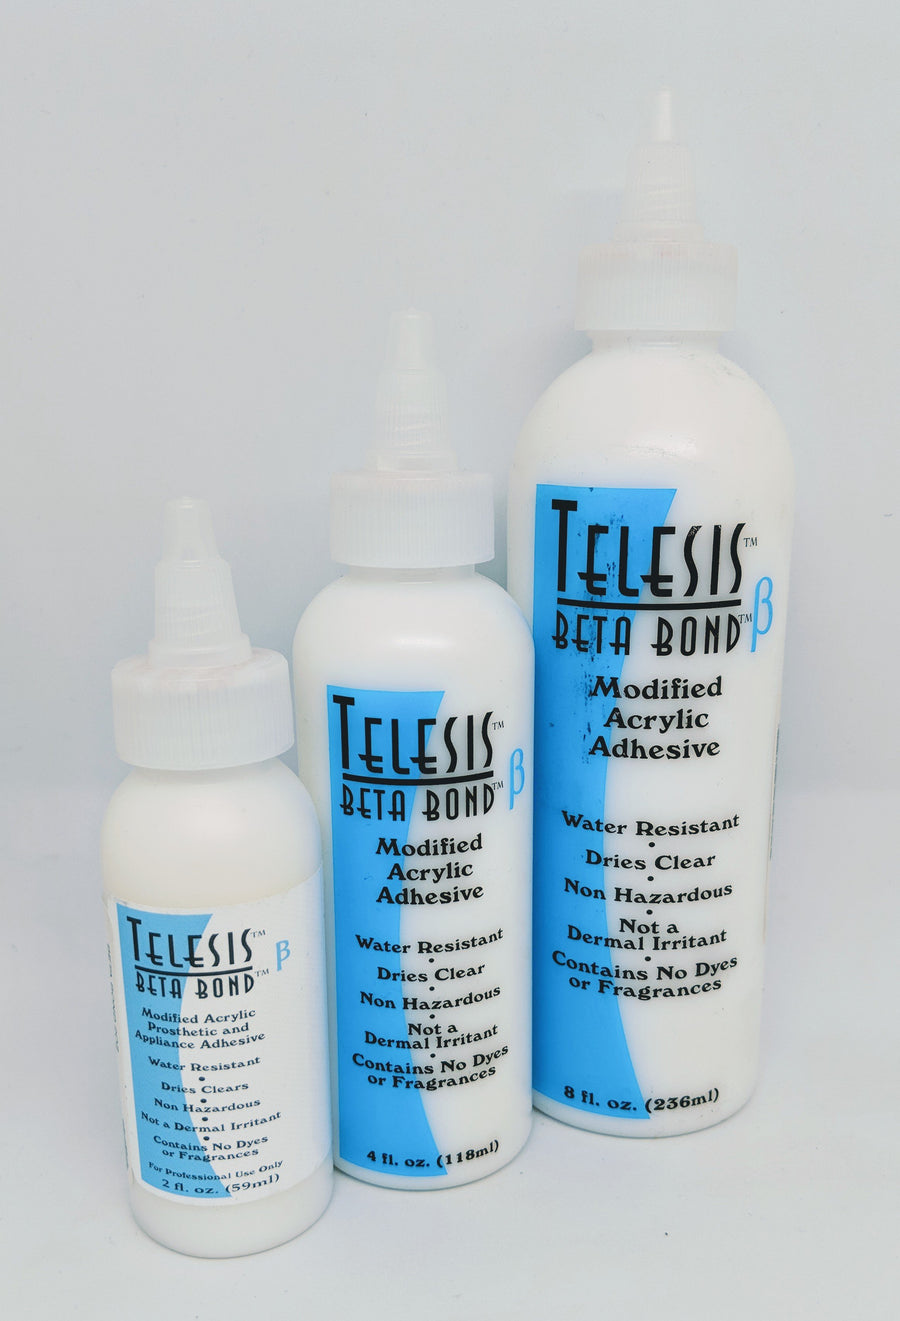 PPI Telesis Beta Bond - Similar to Pros-Aide - clear drying, non flammable, great for prosthetic appllication. Alternative to silicone glues. Some experts prefer beta bond to prosaide, don't forget beta bond plus - which is stronger, tackier and a bit more pliable. Both can be removed with beta solve... double bonding helps to increase the bond.